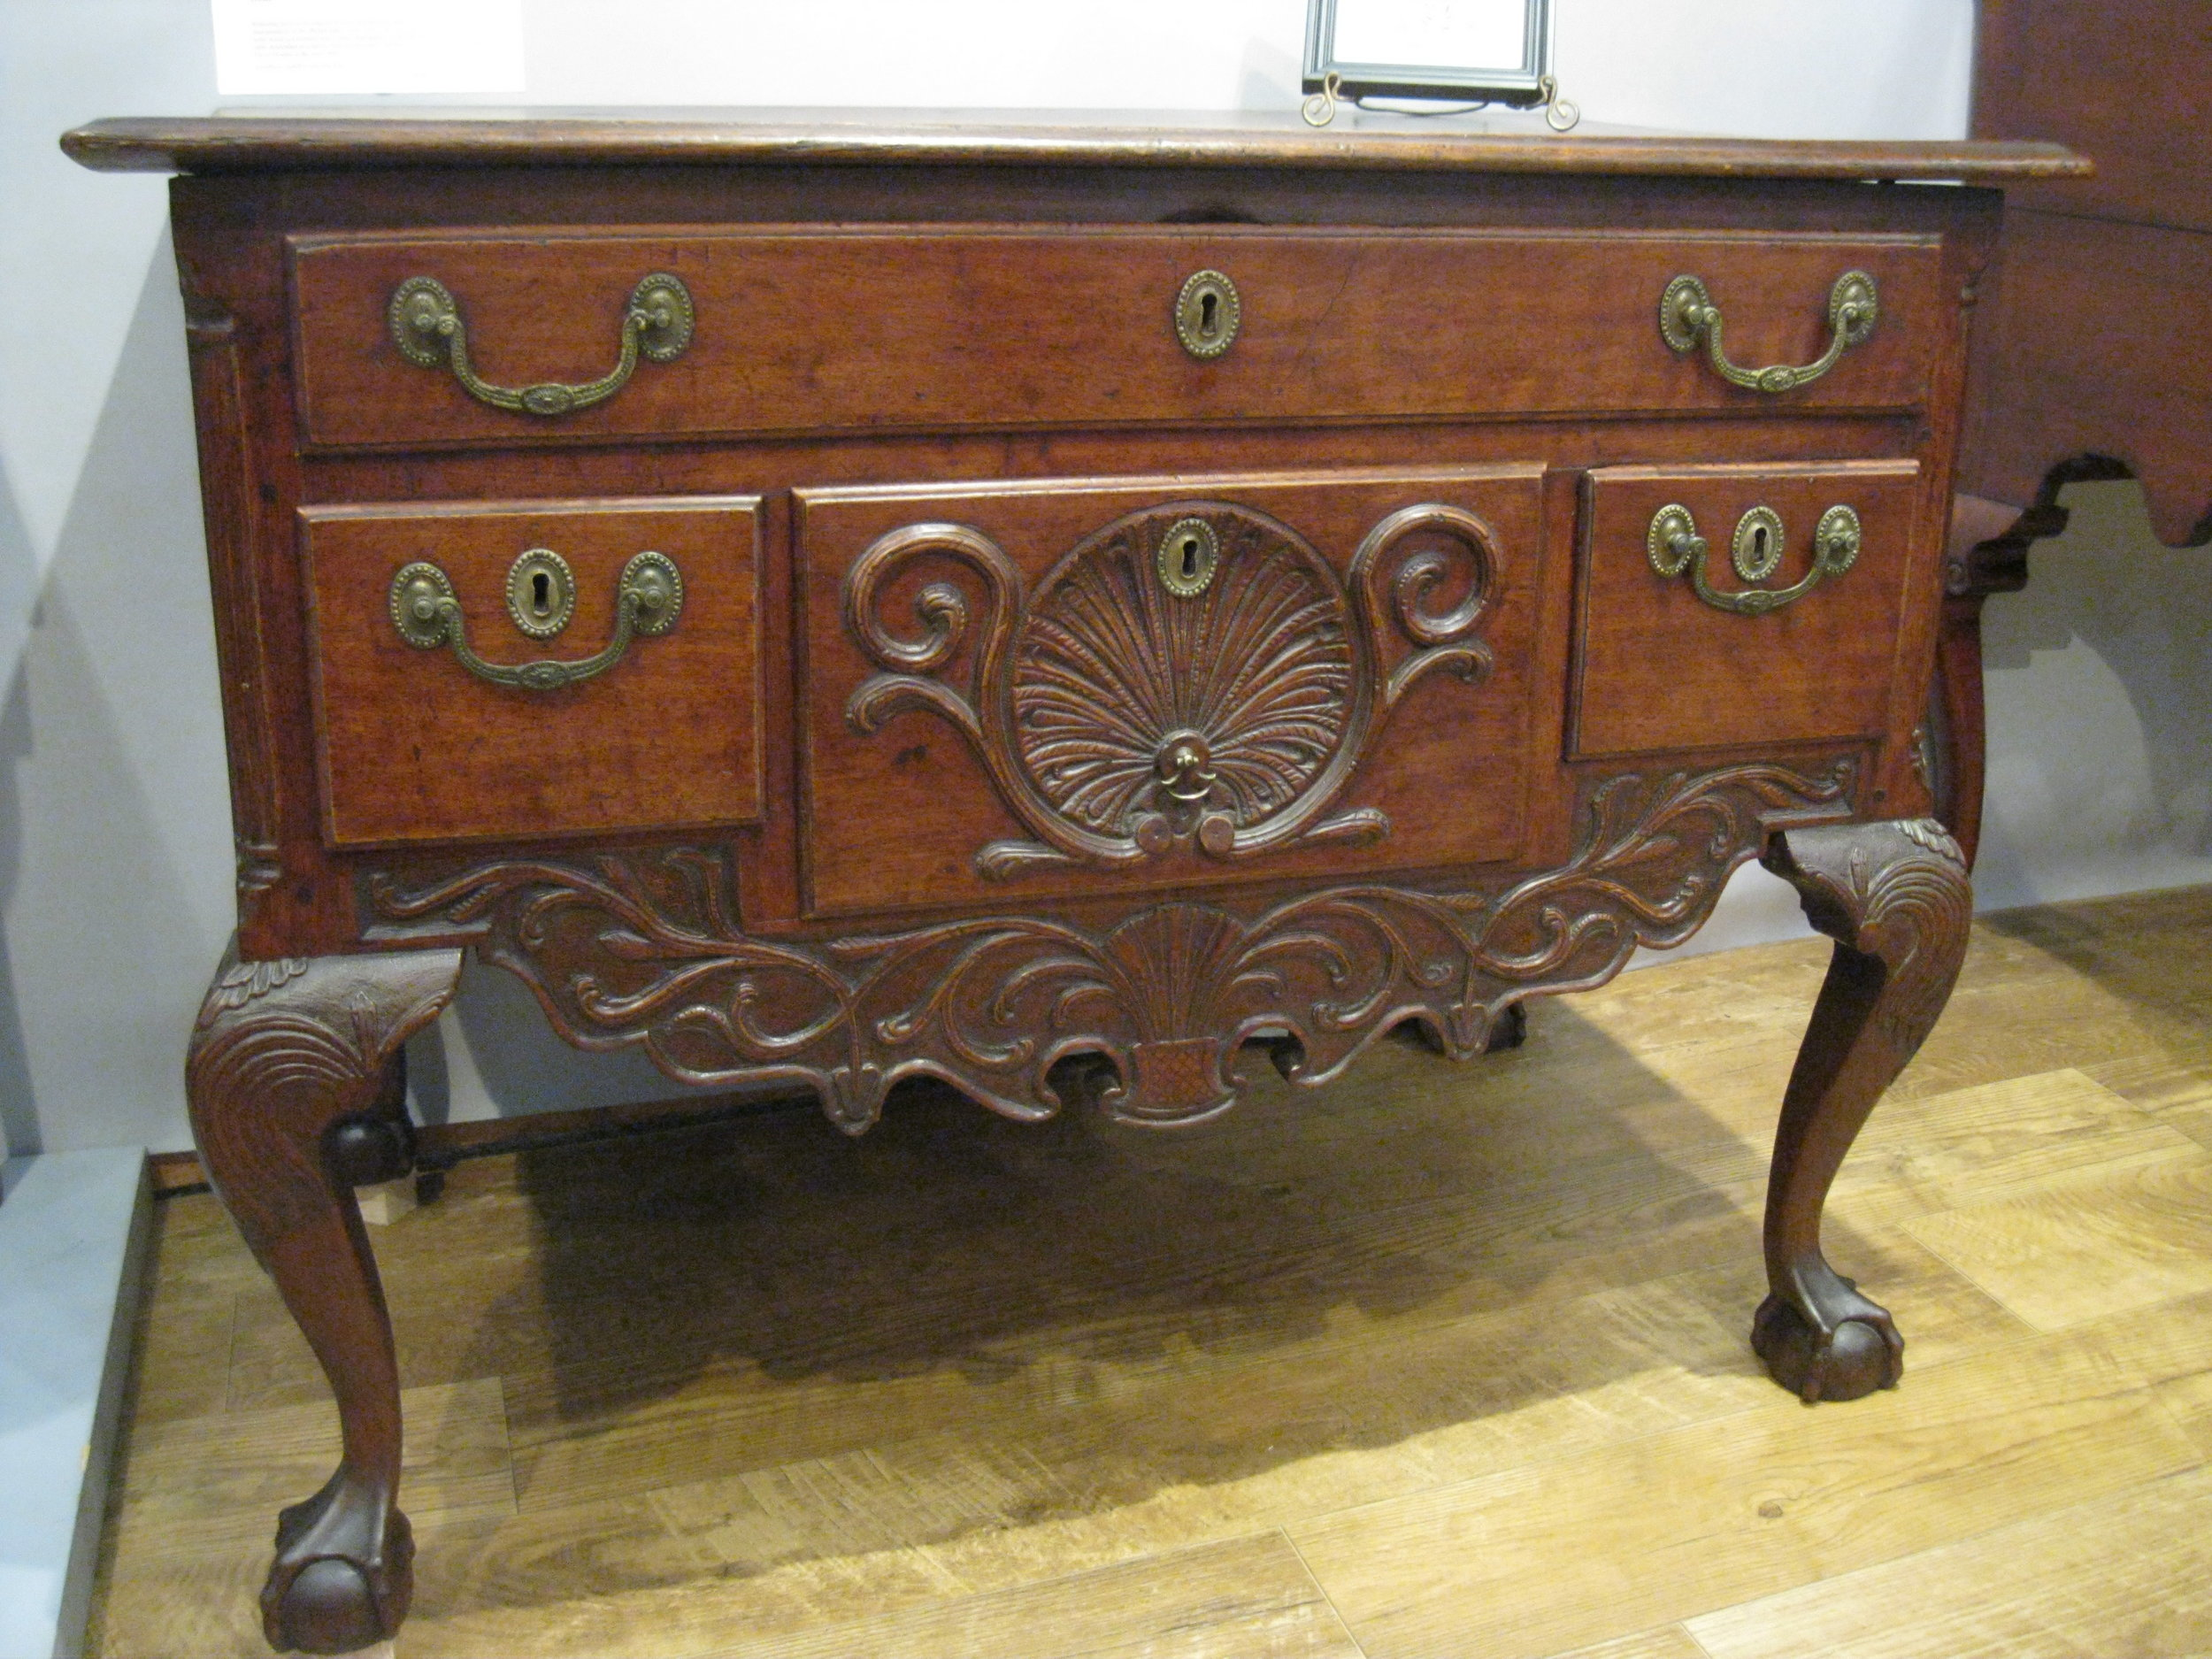 Fascinating German dressing table, made in Lancaster, PA using Philadelphia practices, the booth of Philip Bradley